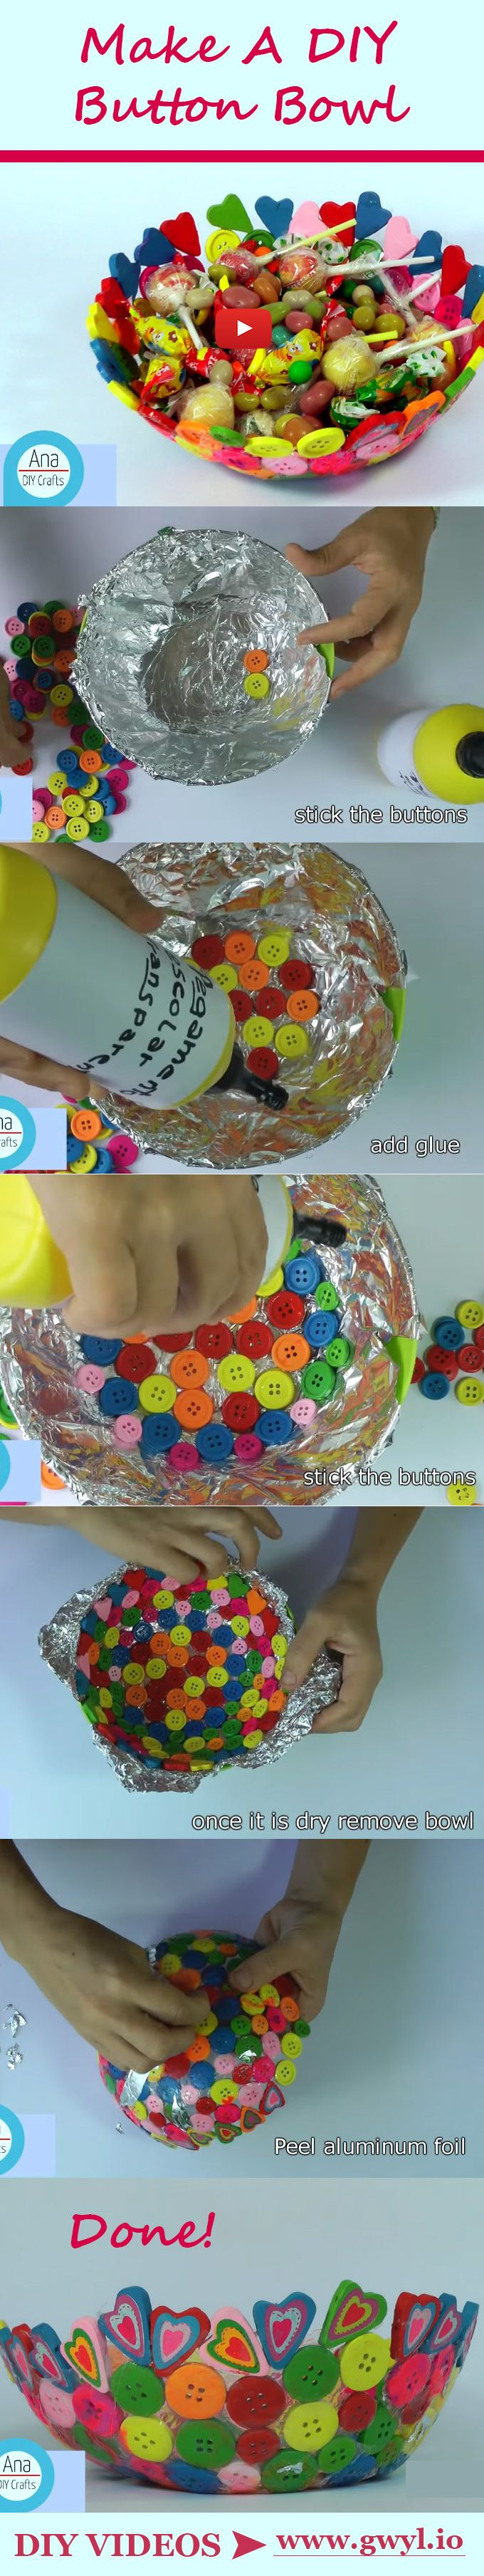 This DIY bowl made out of buttons will show you how to upcycle your old buttons into a trendy little bowl! - Video tutorial ---> http://gwyl.io/make-a-one-of-a-kind-bowl-using-buttons/ | Make A One Of A Kind Bowl Using Buttons